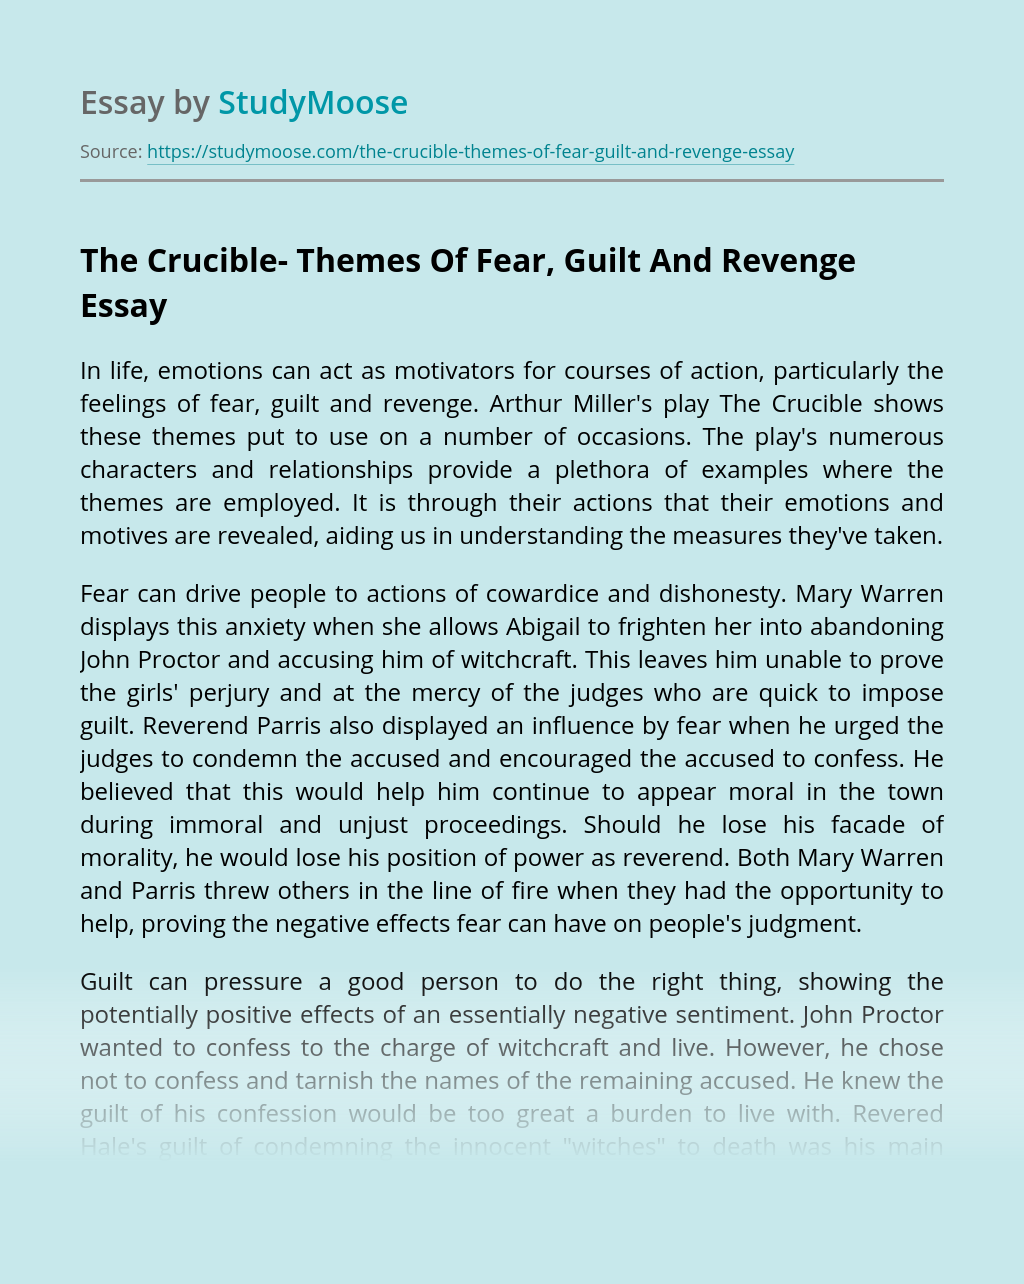 The Crucible- Themes Of Fear, Guilt And Revenge